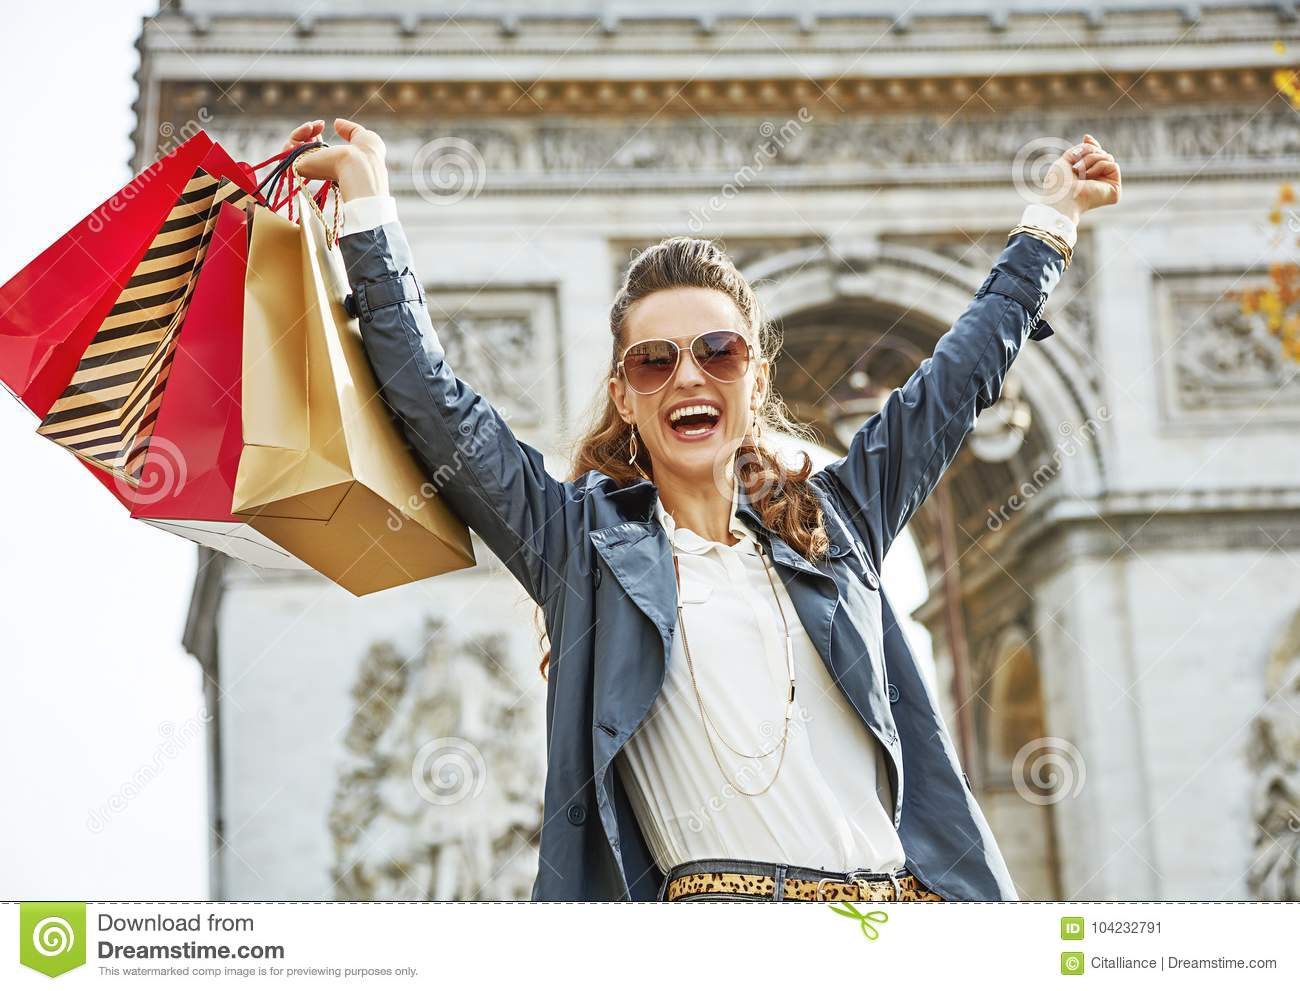 Smiling woman with shopping bags in Paris, France rejoicing